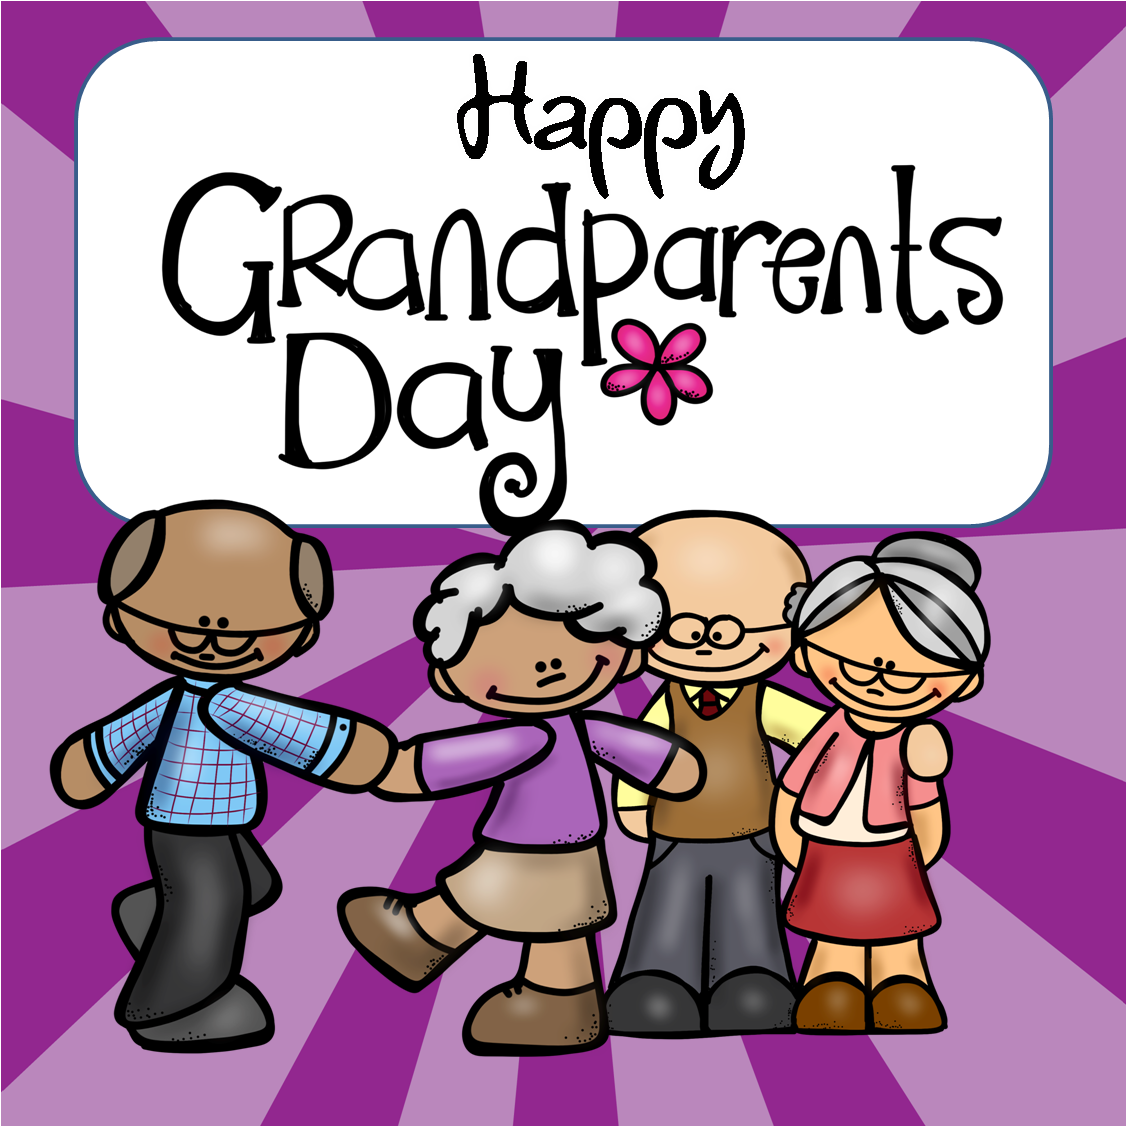 ... Grandparents Day Clipart - clipartal-... Grandparents Day Clipart - clipartall ...-7